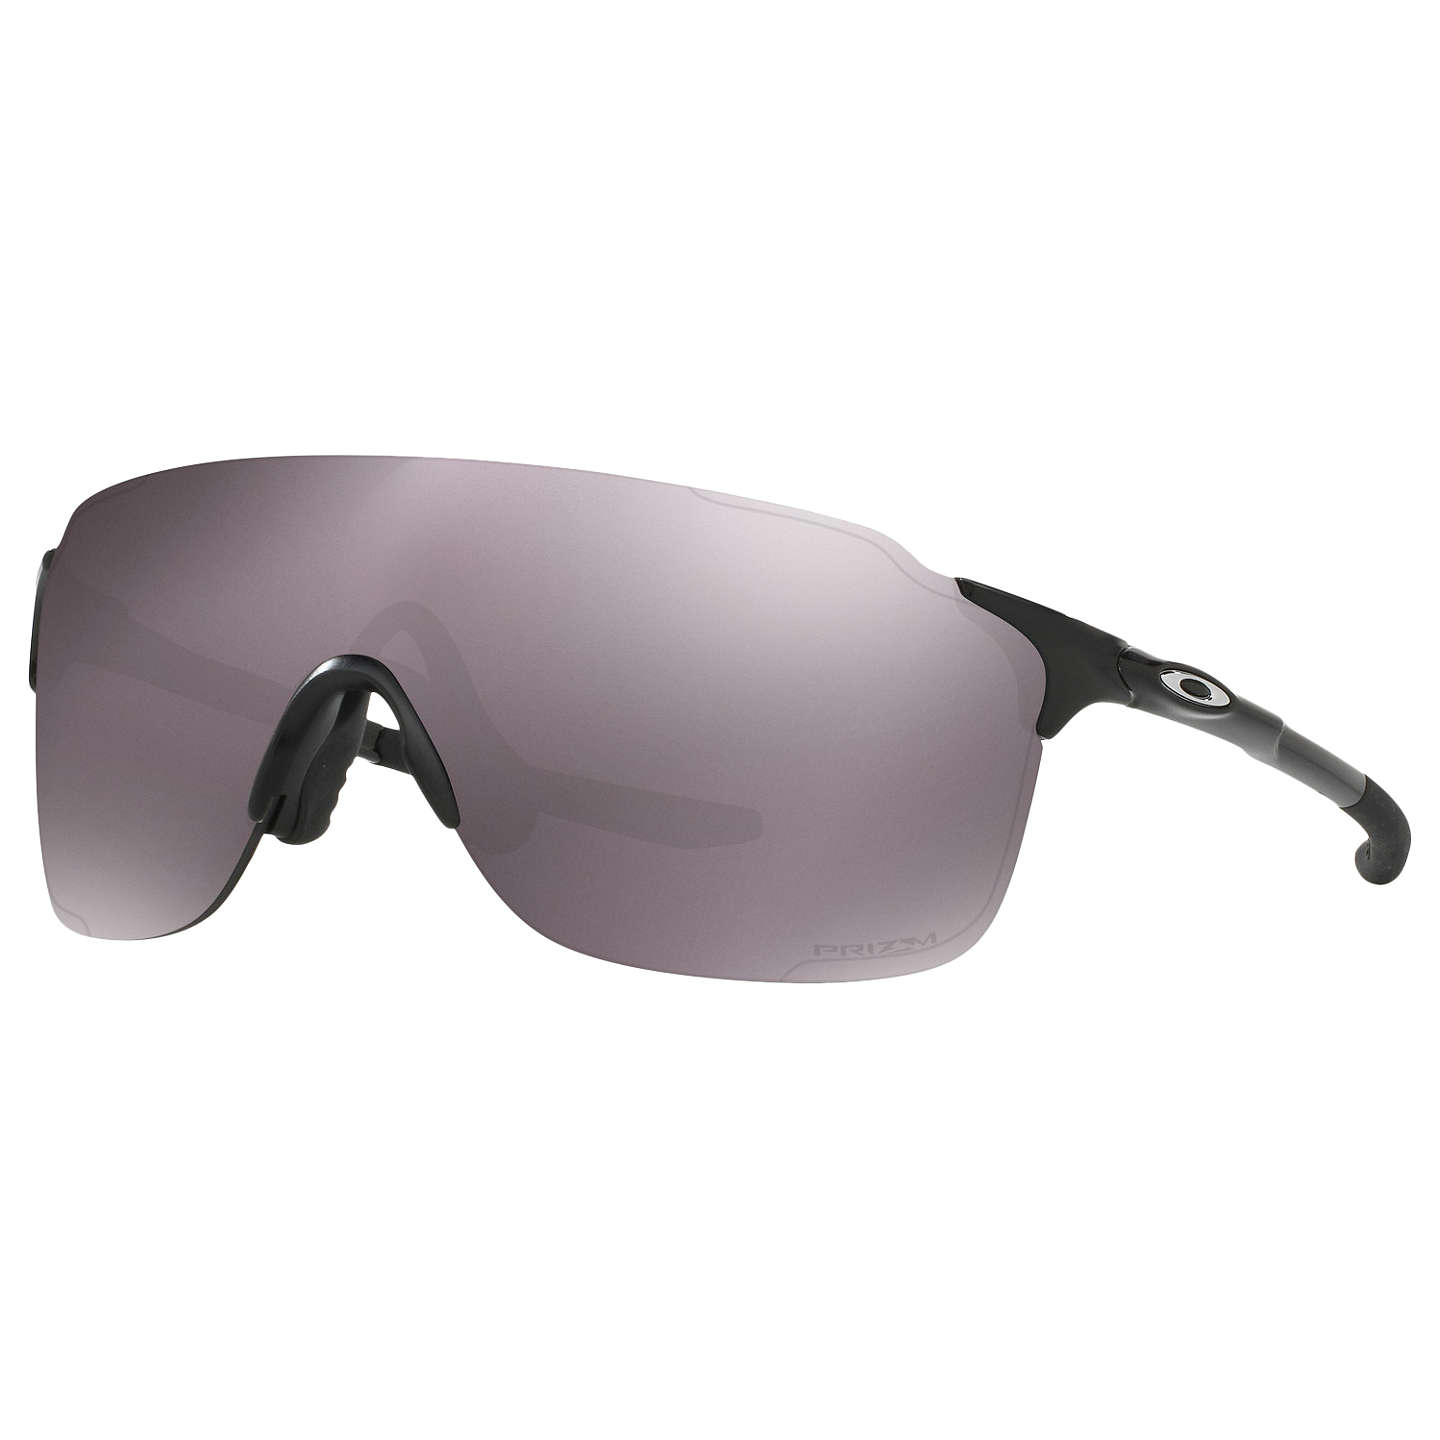 ... collection oakley outlet san marcos tx; buyoakley oo9386 polarised  evzero stride prizm rectangular sunglasses polished black mirror beige  online at